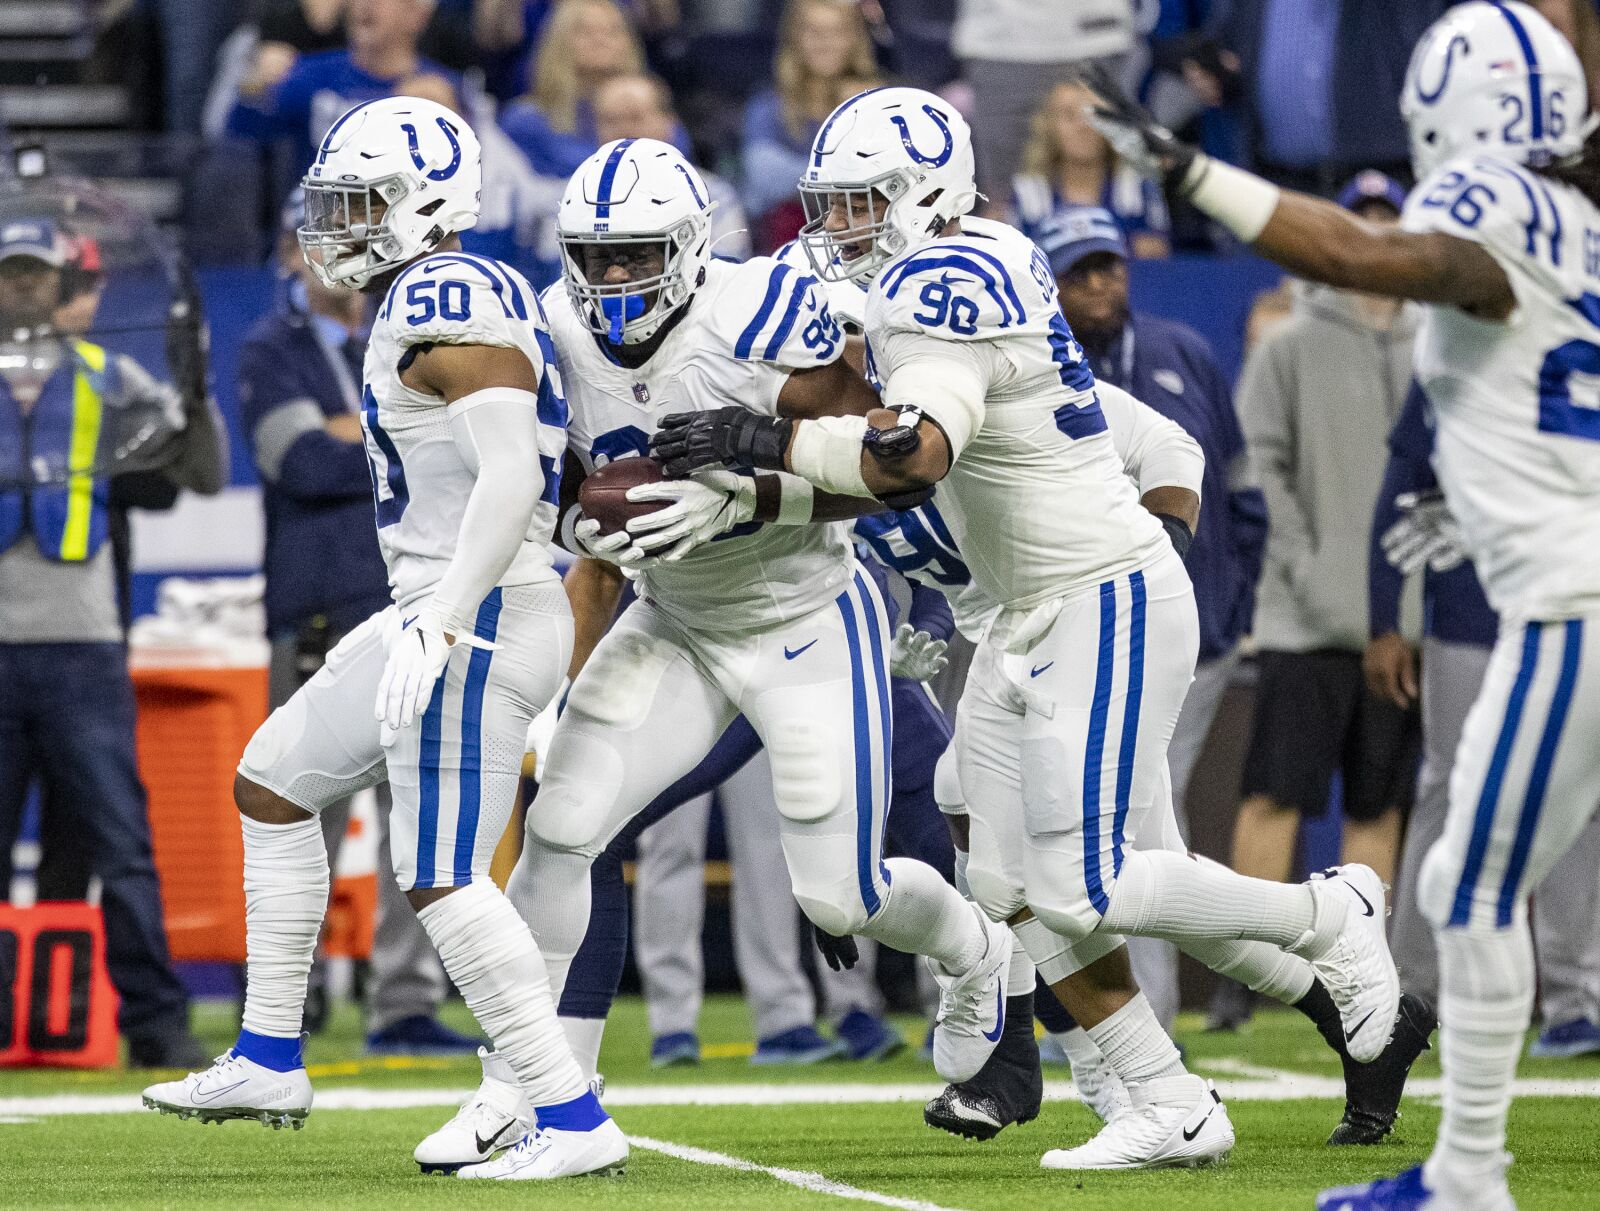 Colts vs. Buccaneers: Game prediction